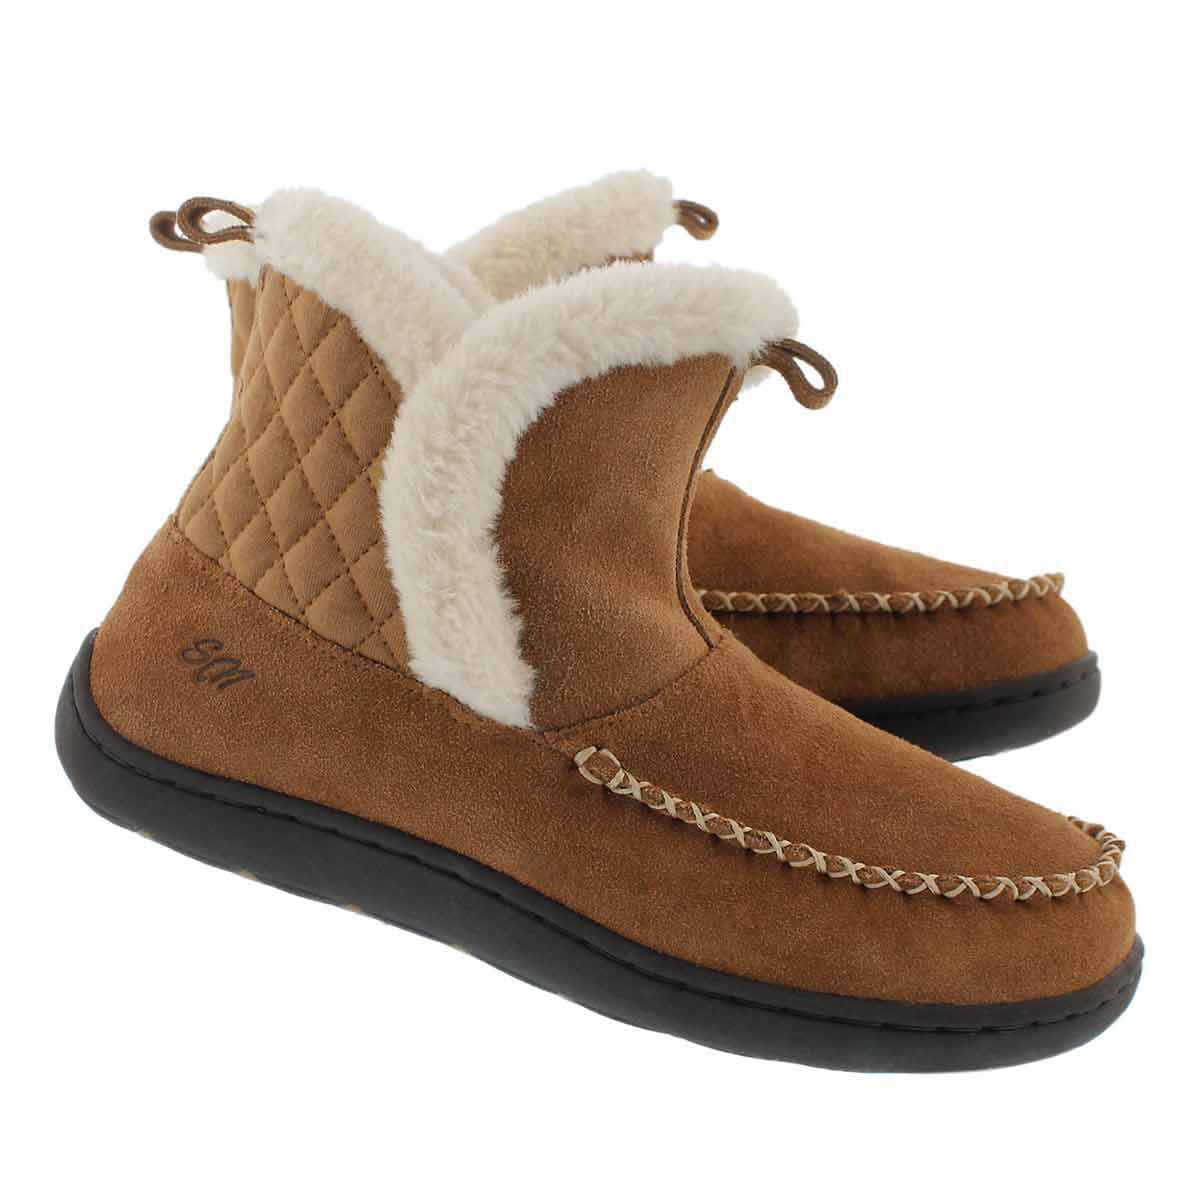 Lds Phoebe Lo ches suede slipper bootie